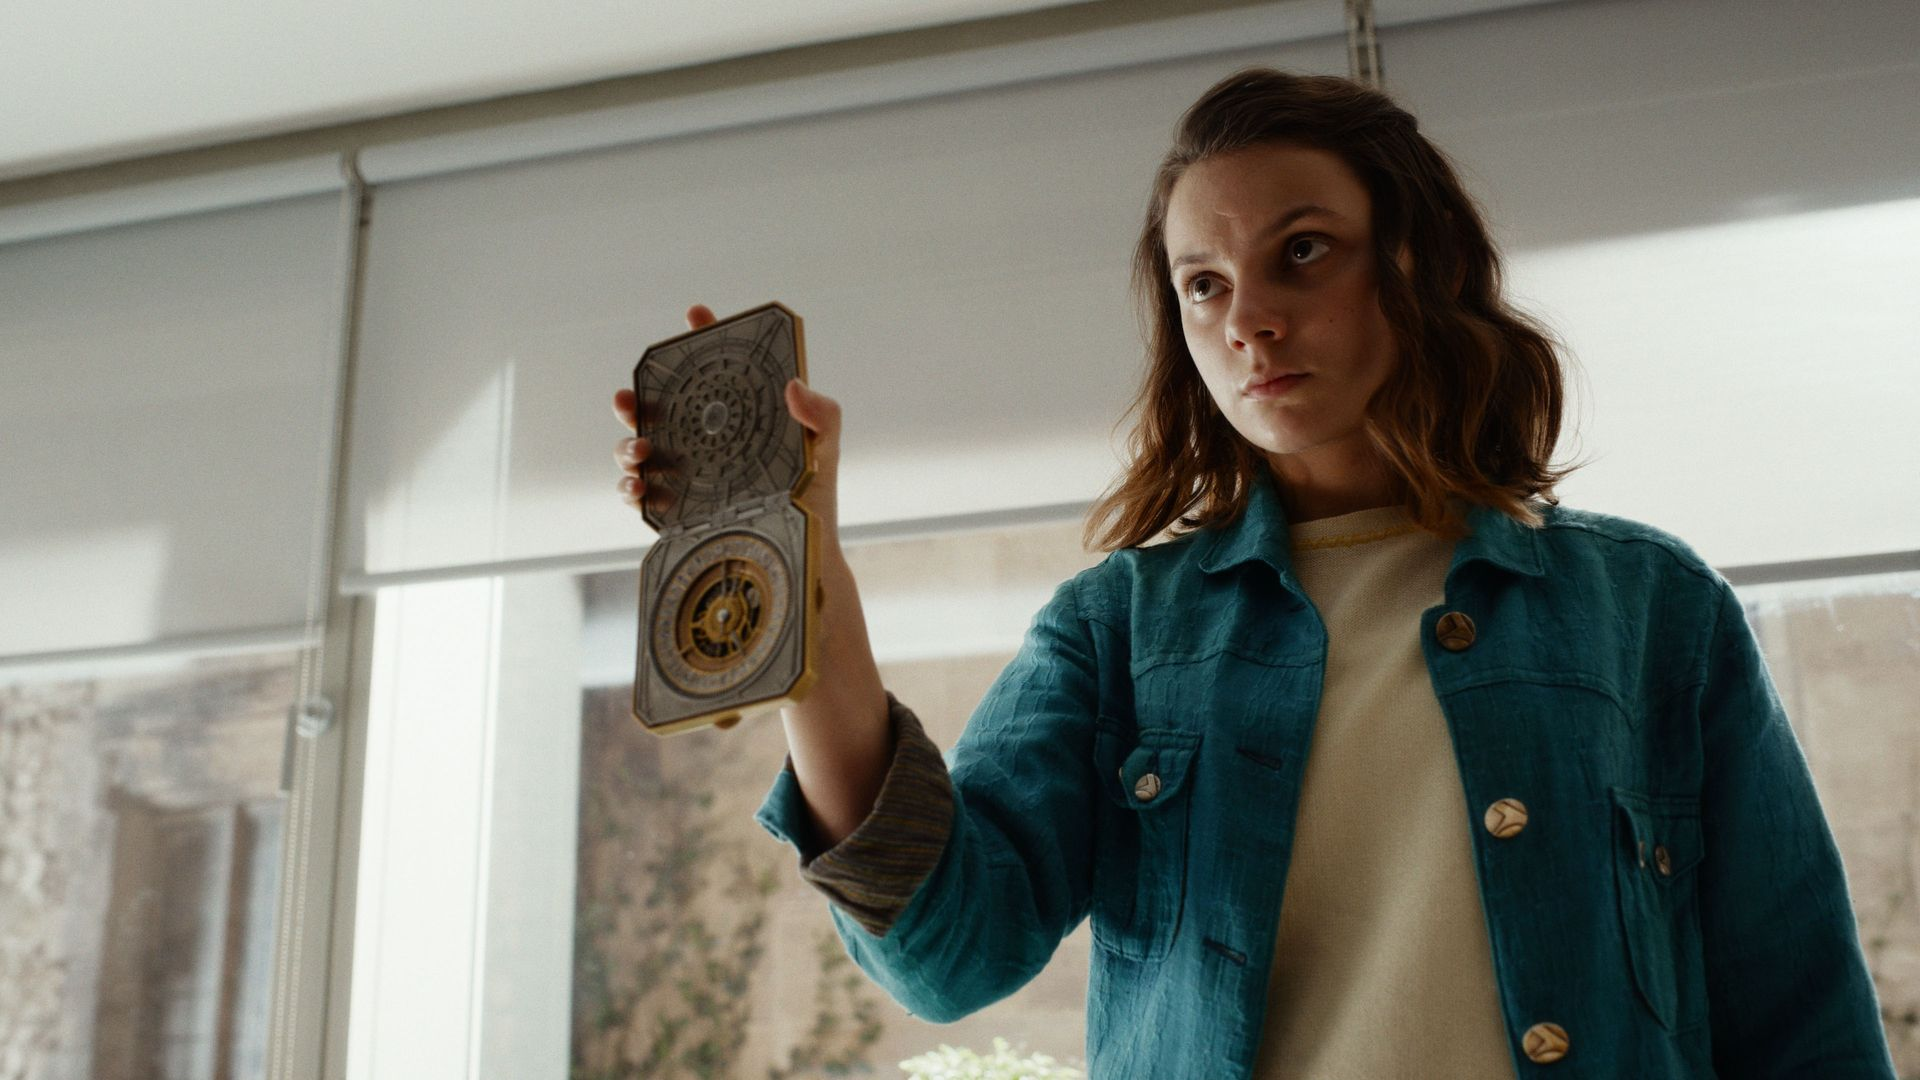 His Dark Materials | 2ª temporada ganha data de estreia na HBO